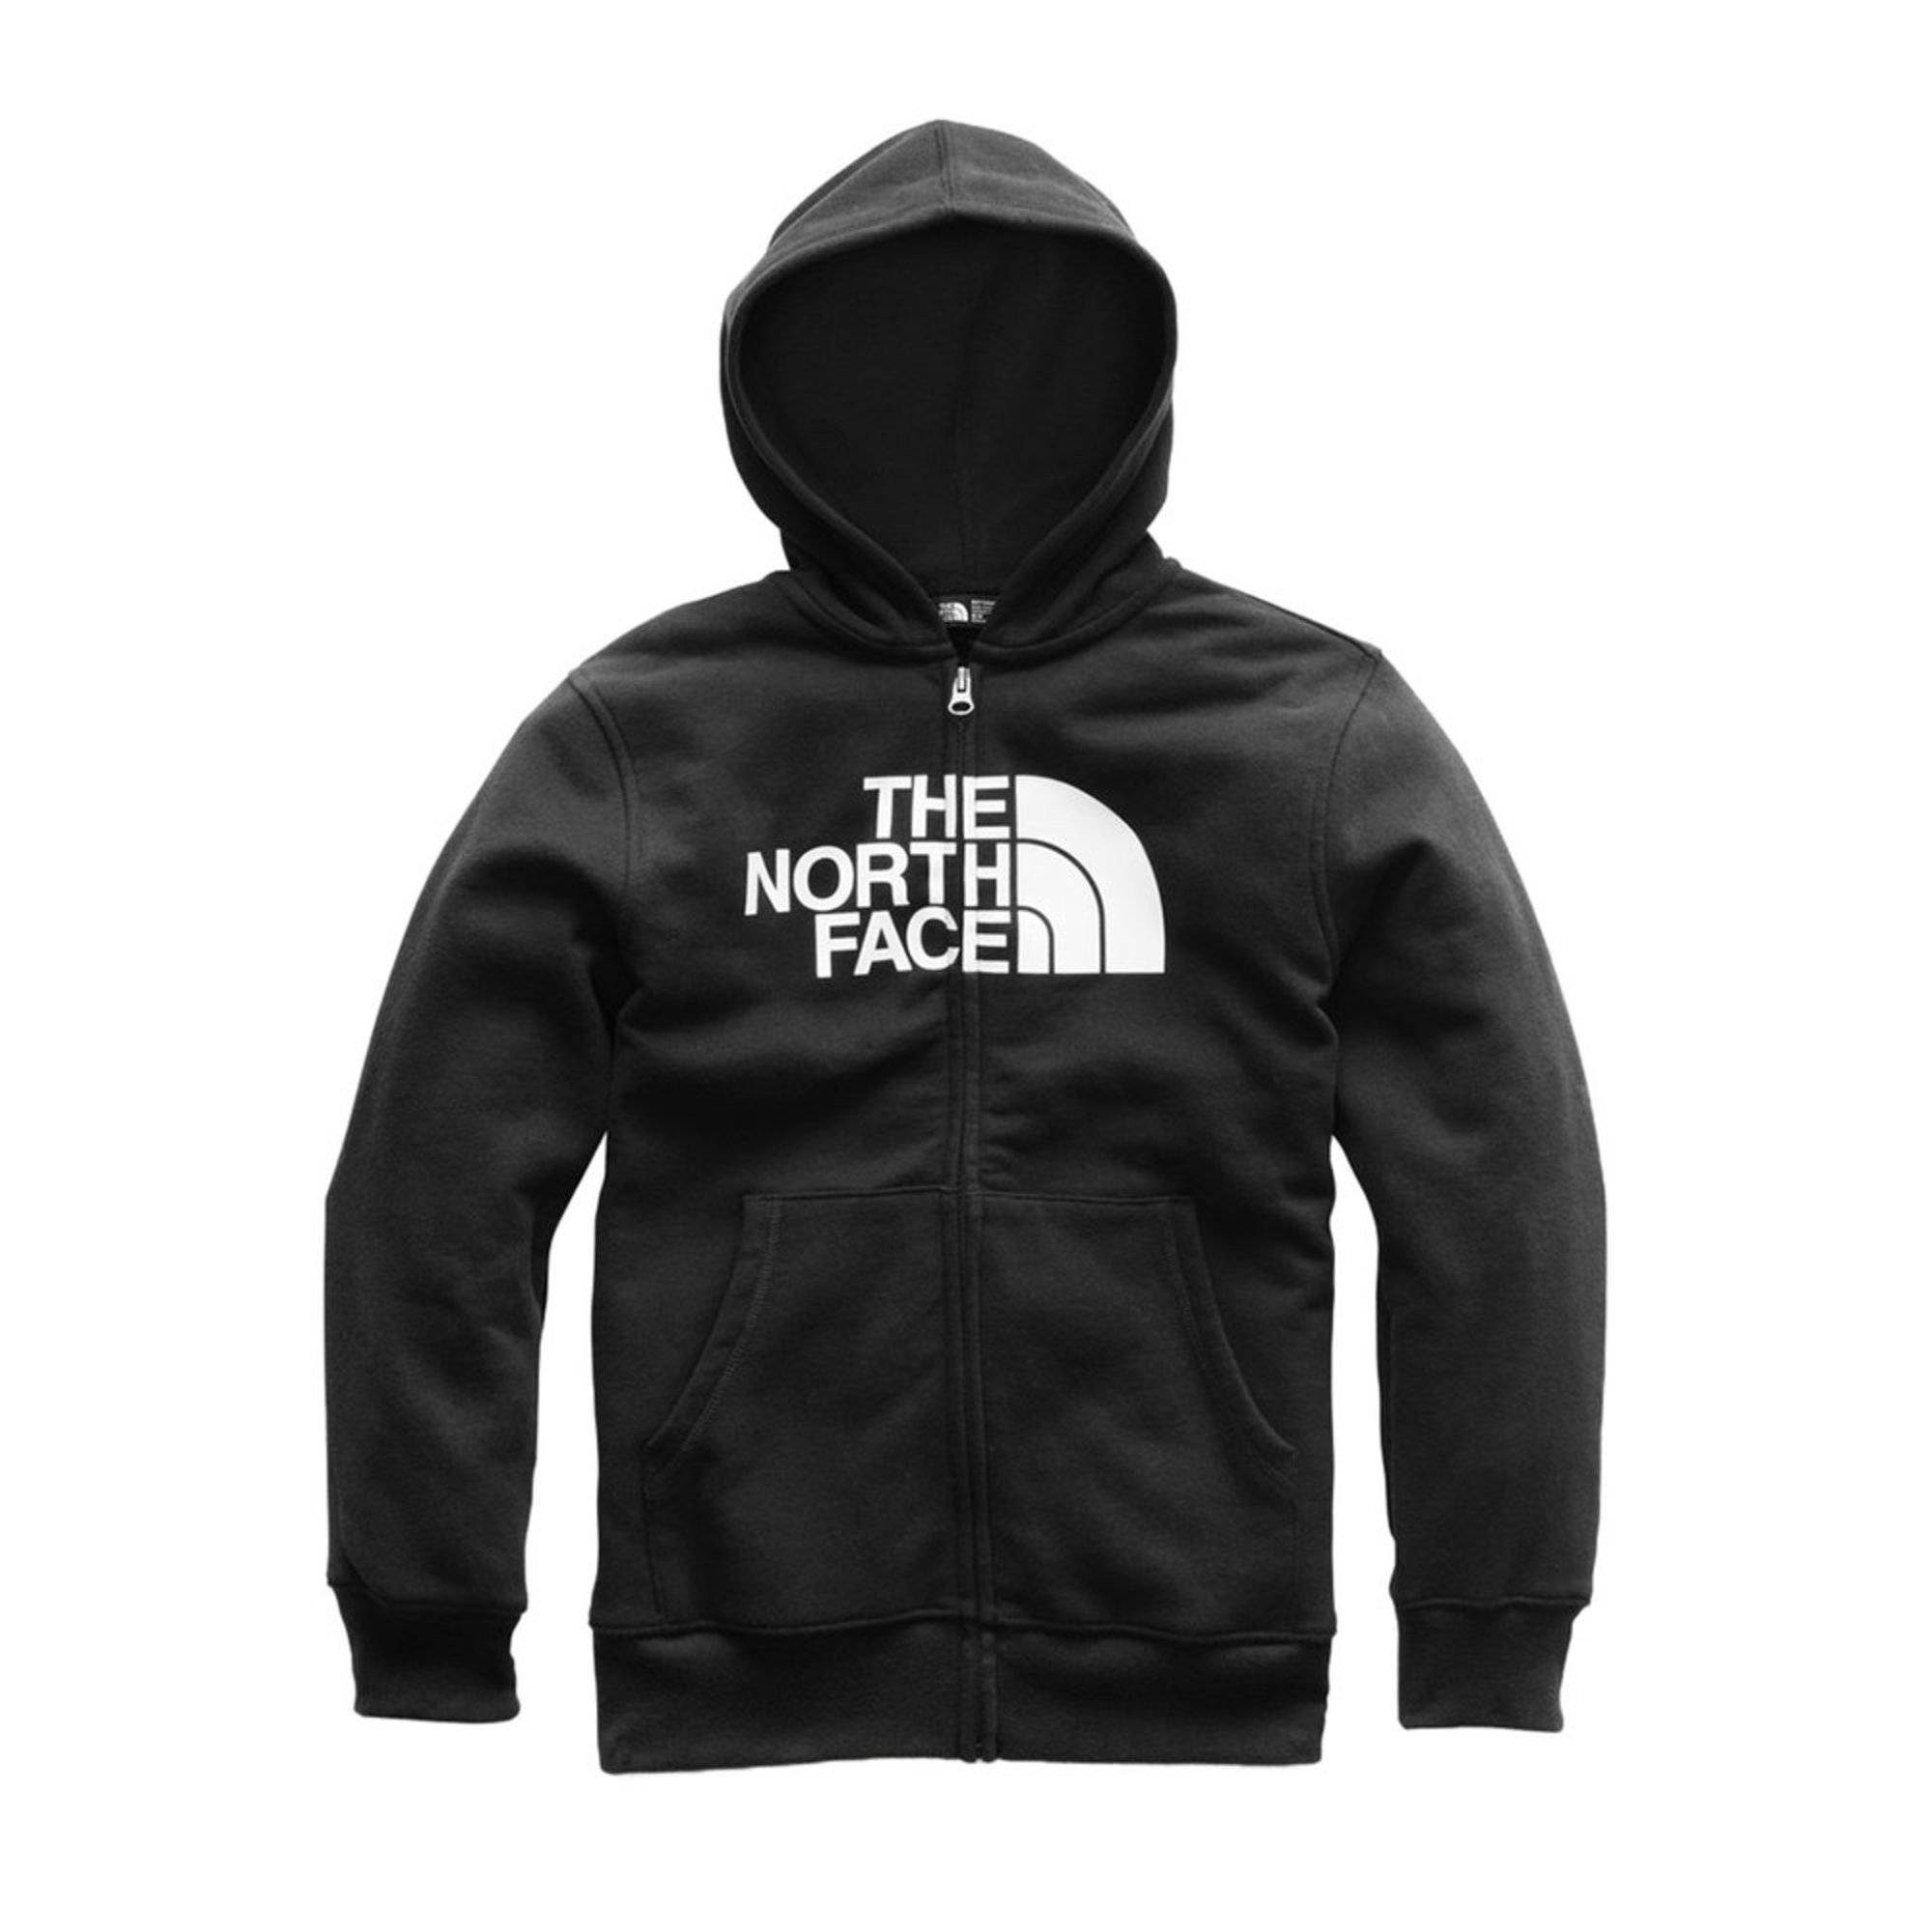 The North Face. The North Face Boys  Logowear Full Zip Hoodie 6225dbc22